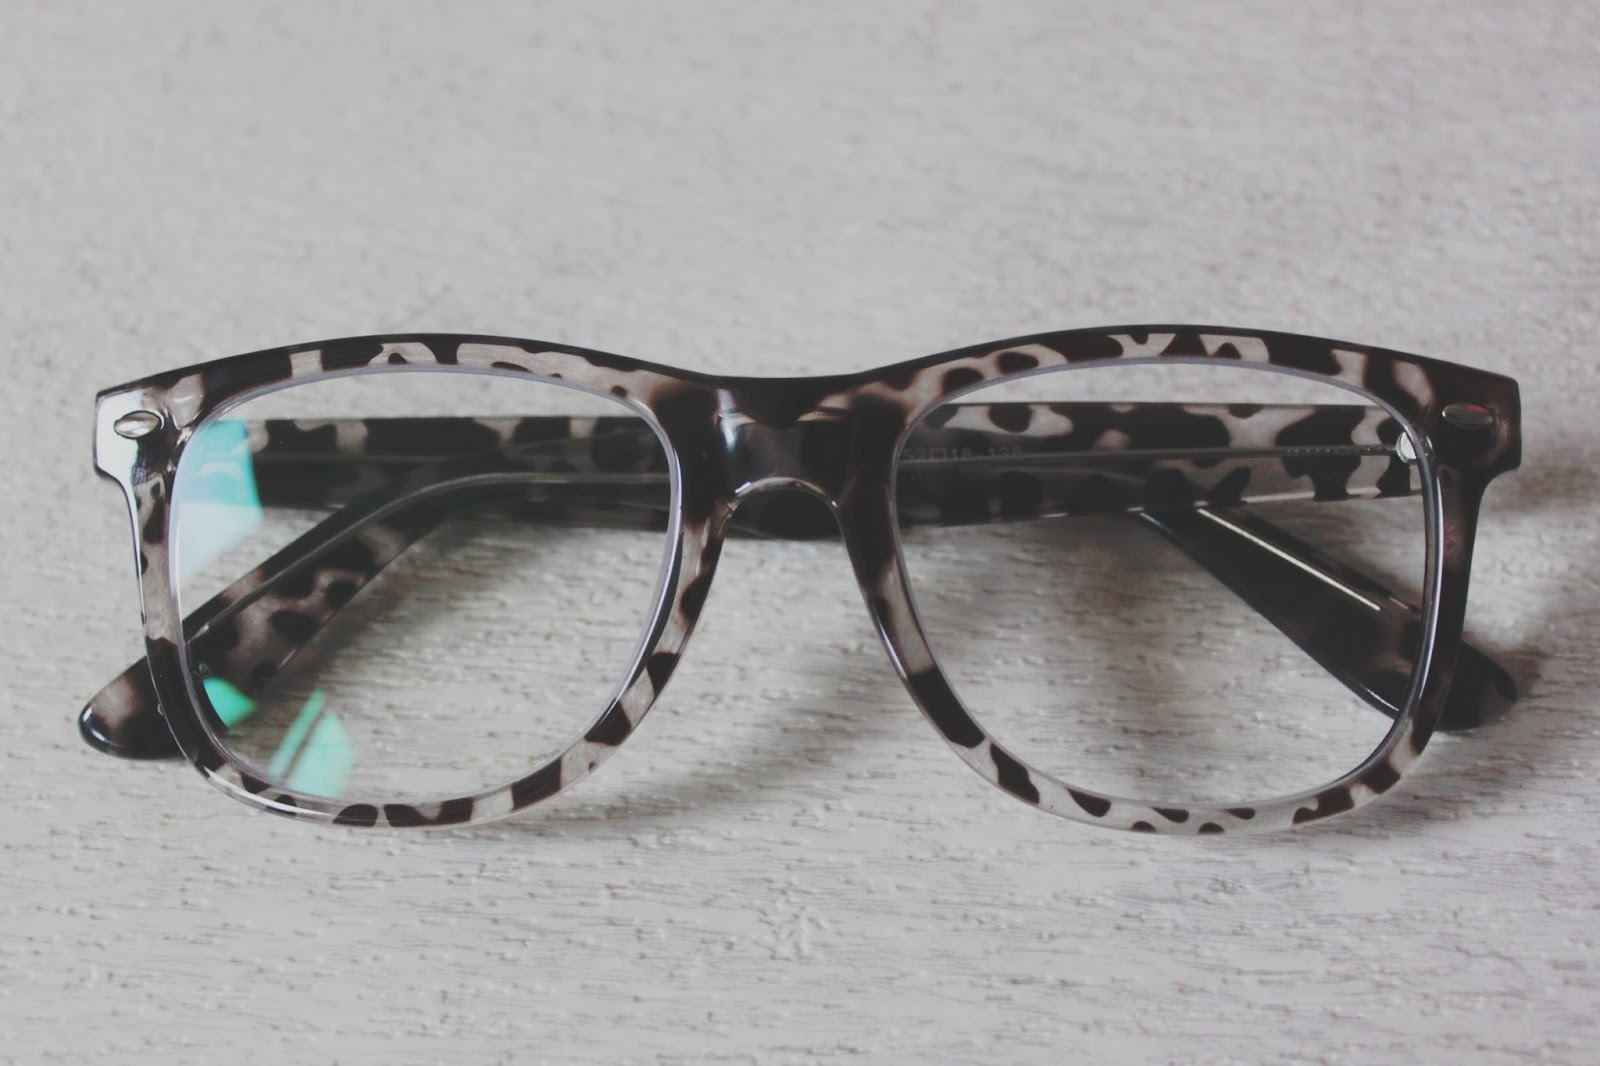 GlassesShop Haul - Quirky New \'Zebra\' Print Glasses Review & Coupon ...